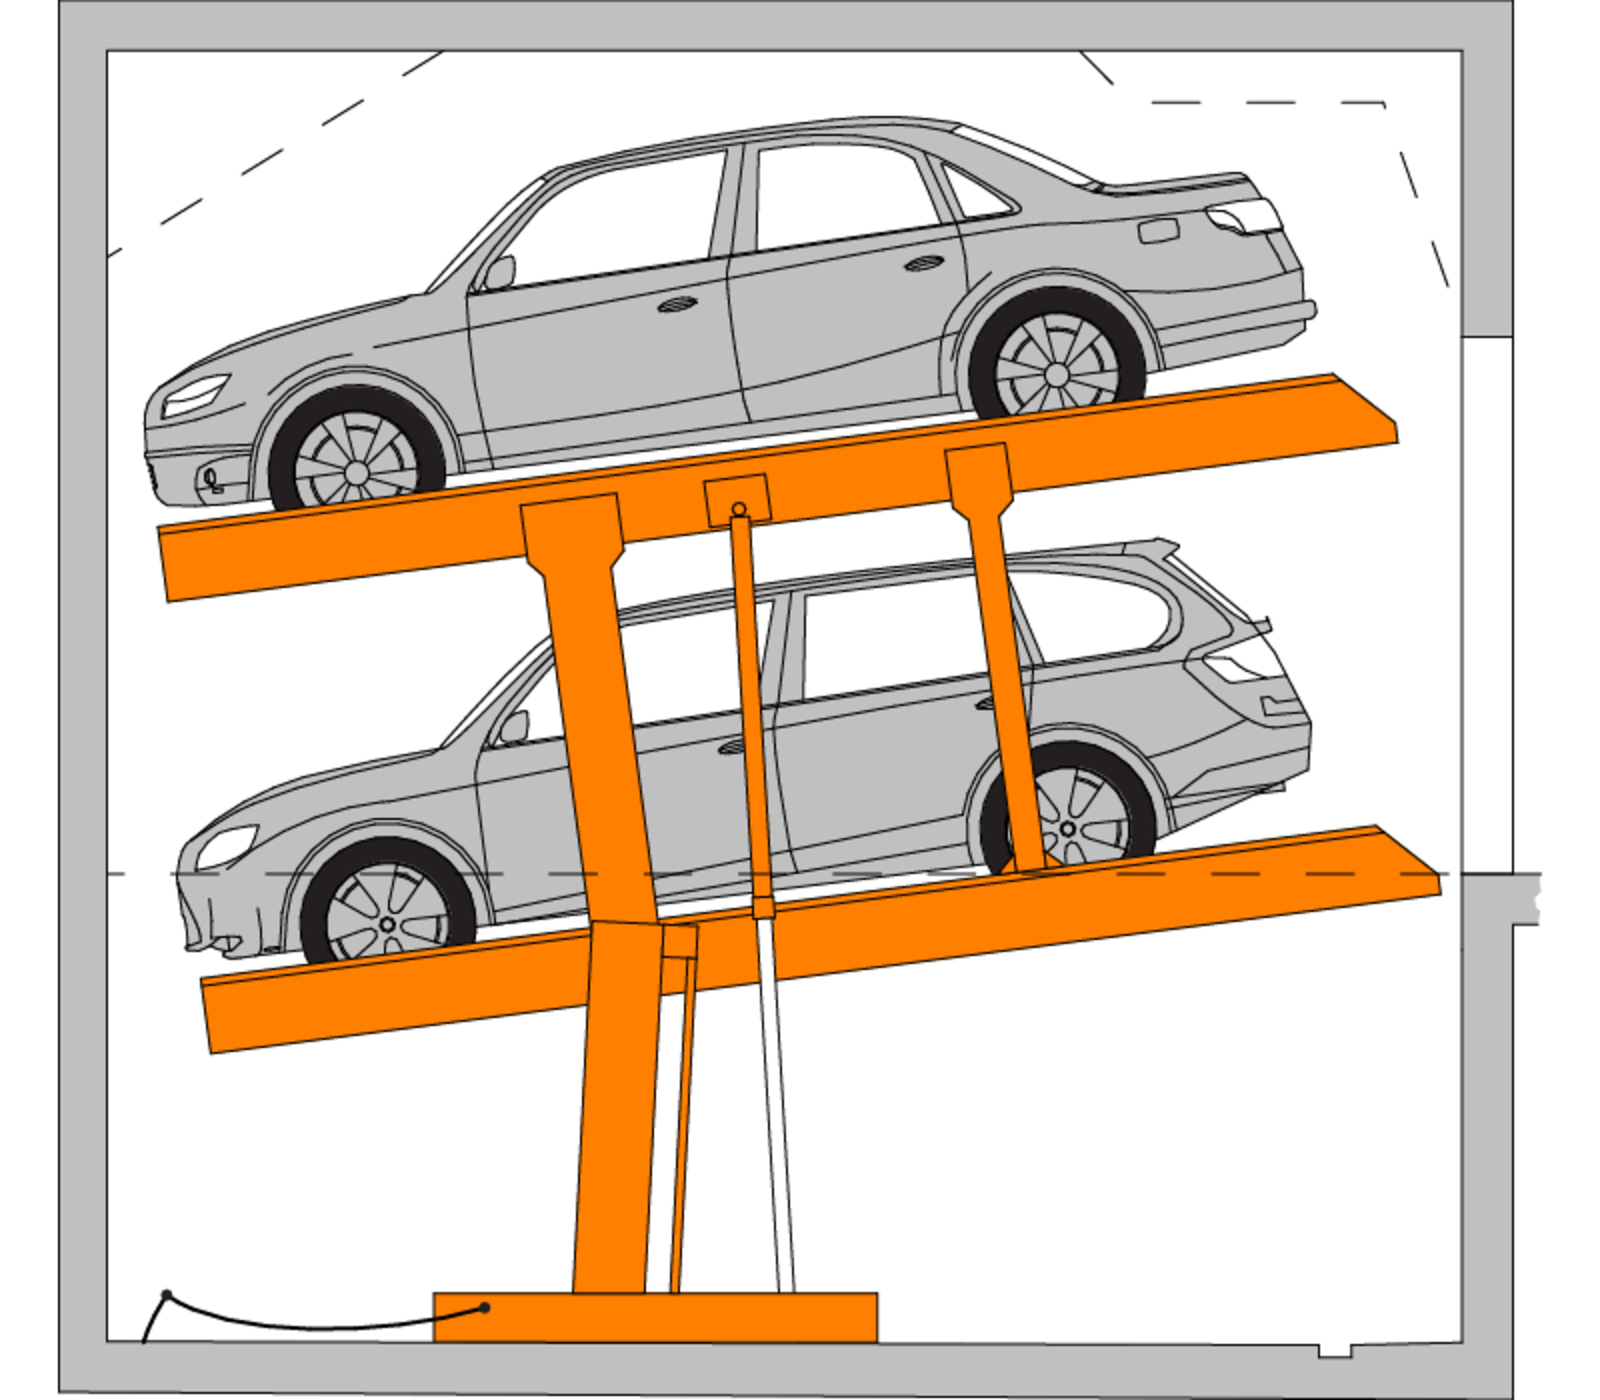 Car stackers australia german. Parking lot clipart underground parking